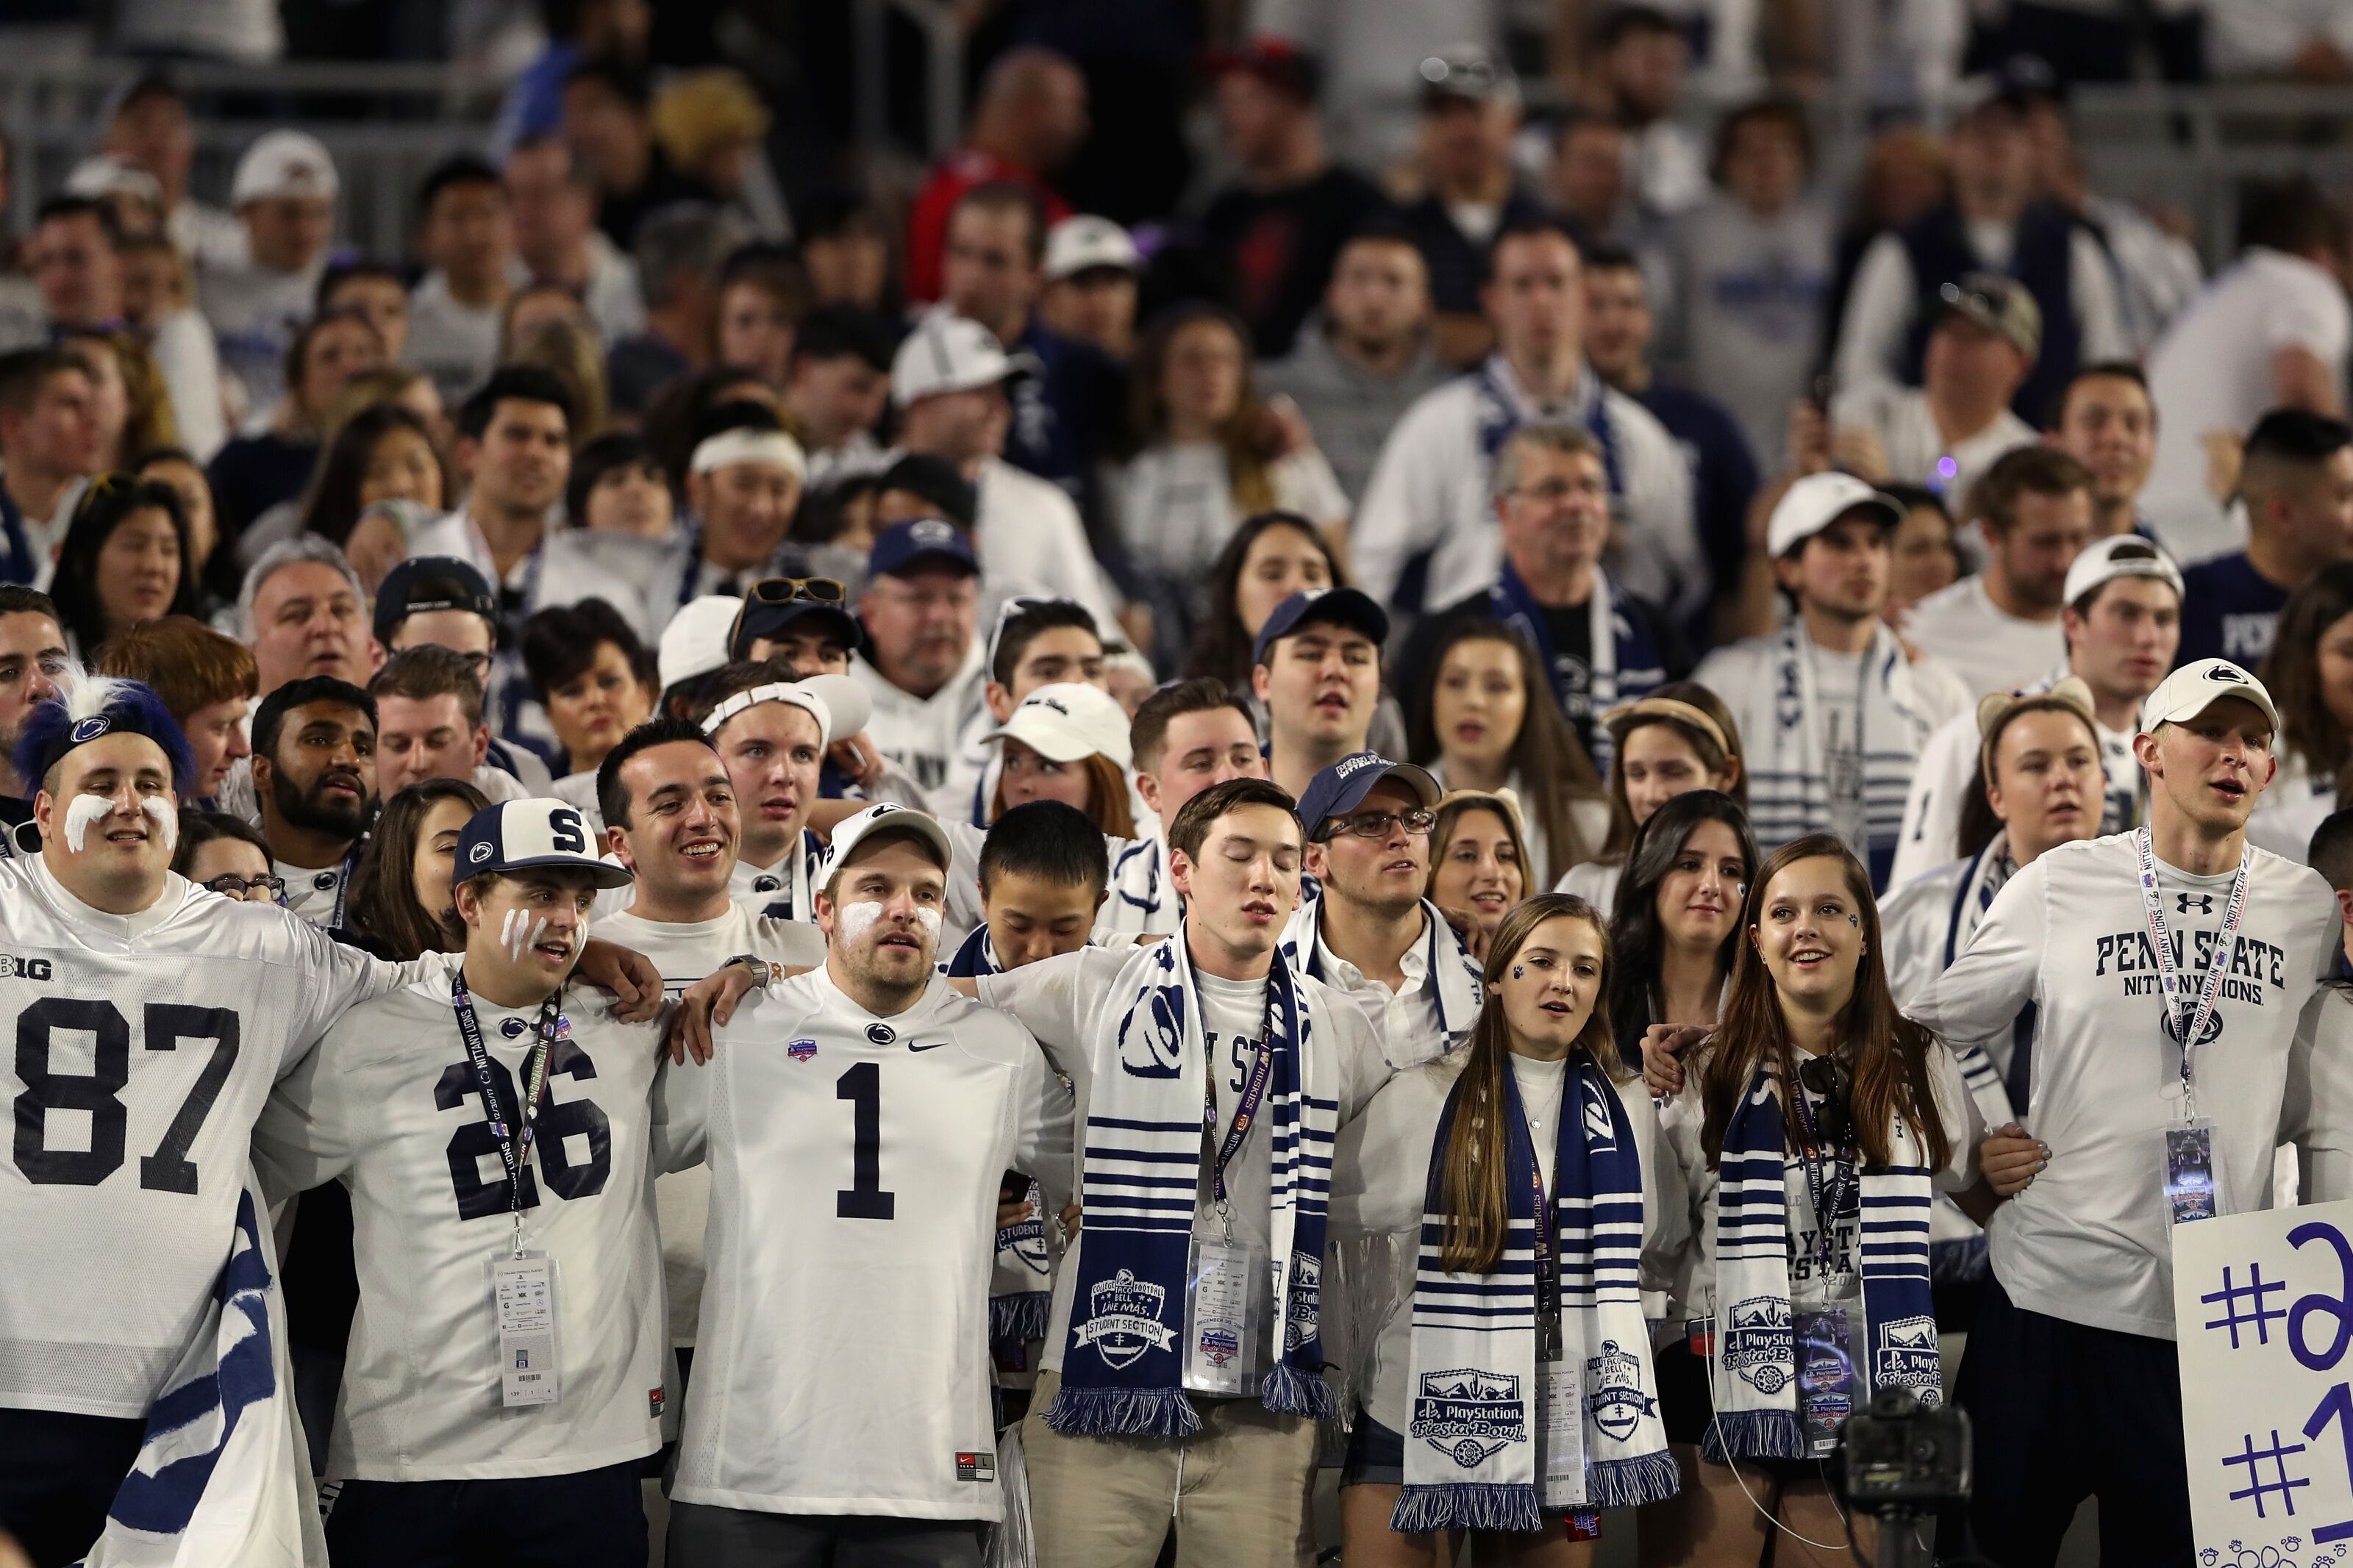 Penn State Nittany Lions ranked as Nation's best in home attendance survey